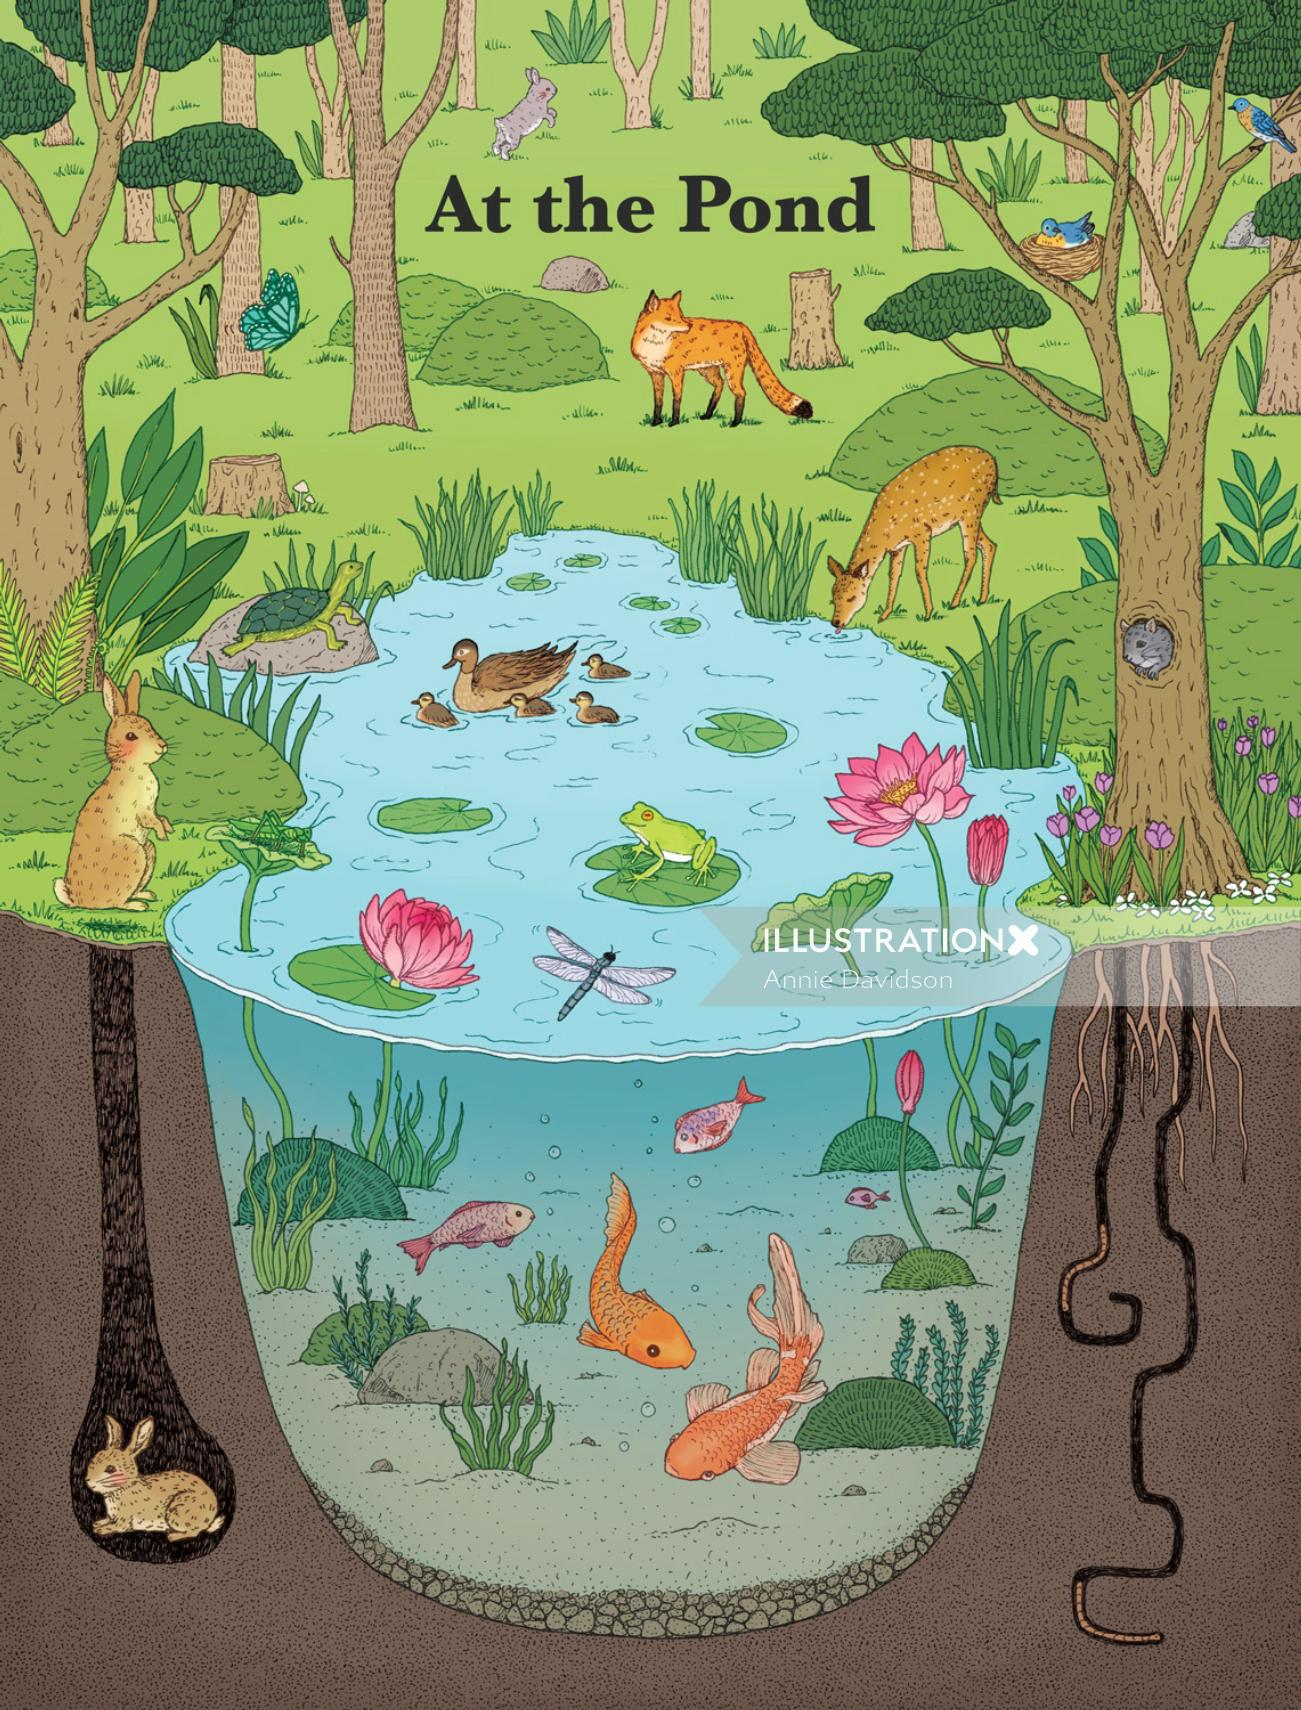 Animals Poster for Scholastic Book